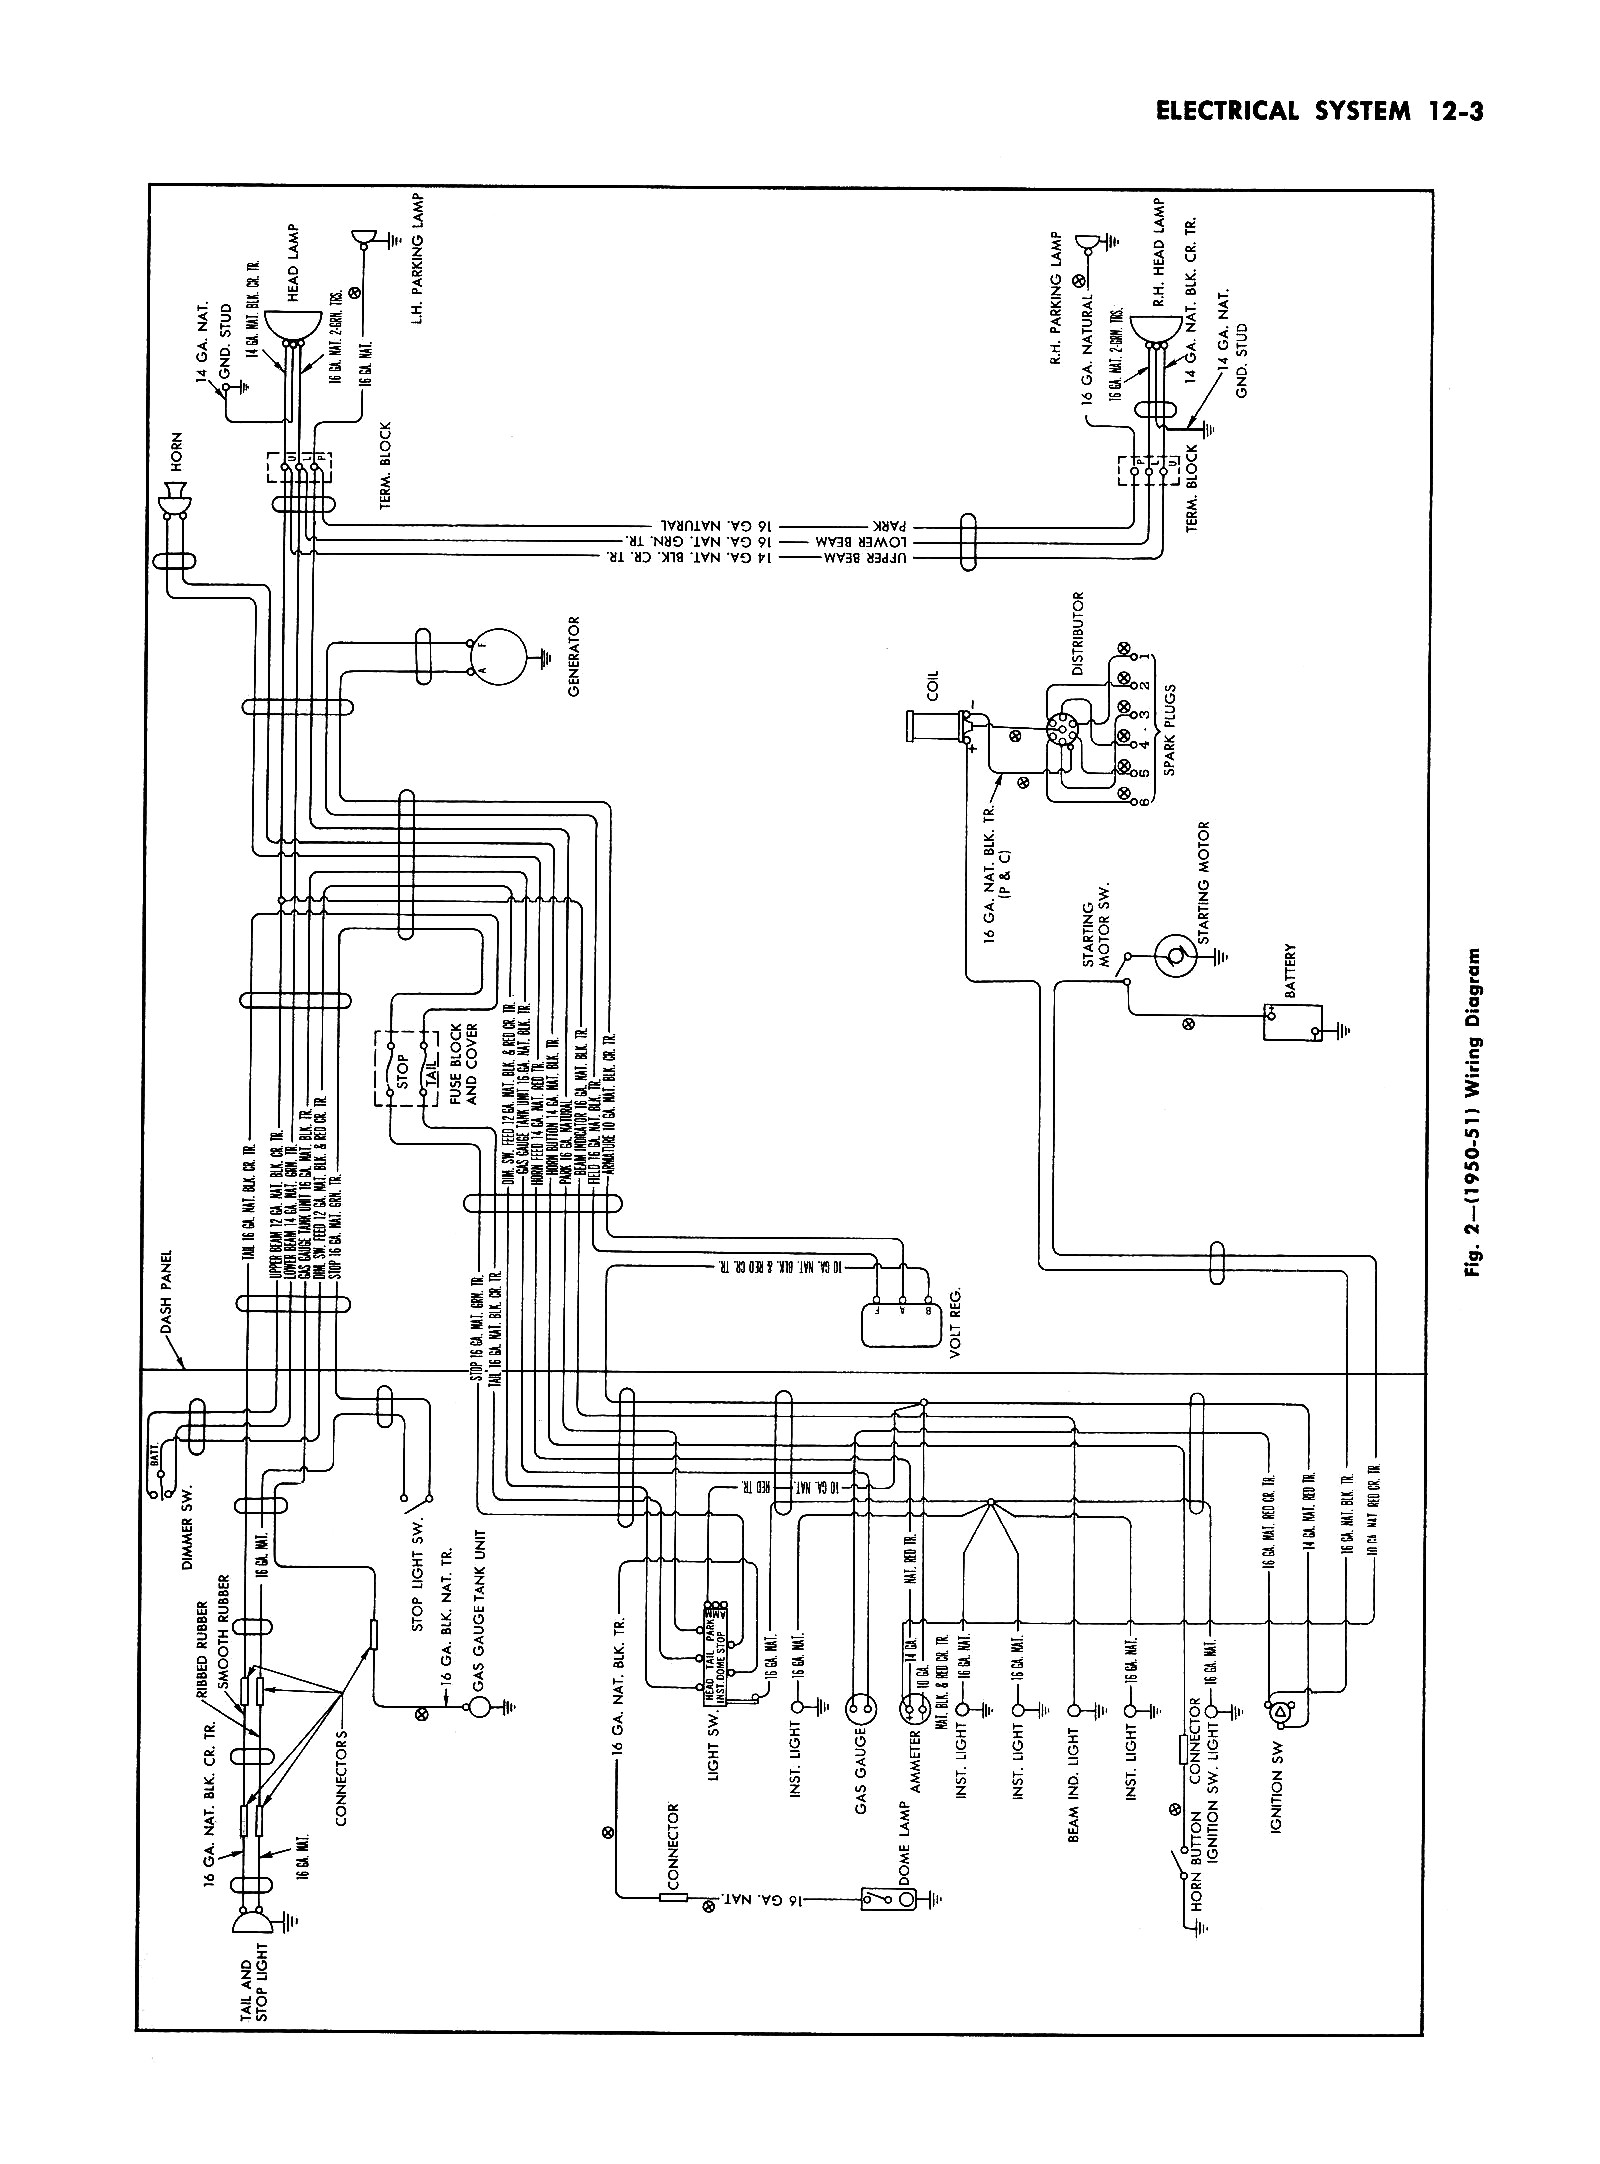 hight resolution of 1949 ford truck wiring diagram wiring diagram toolbox1949 ford wiring schematic manual e book 1949 ford